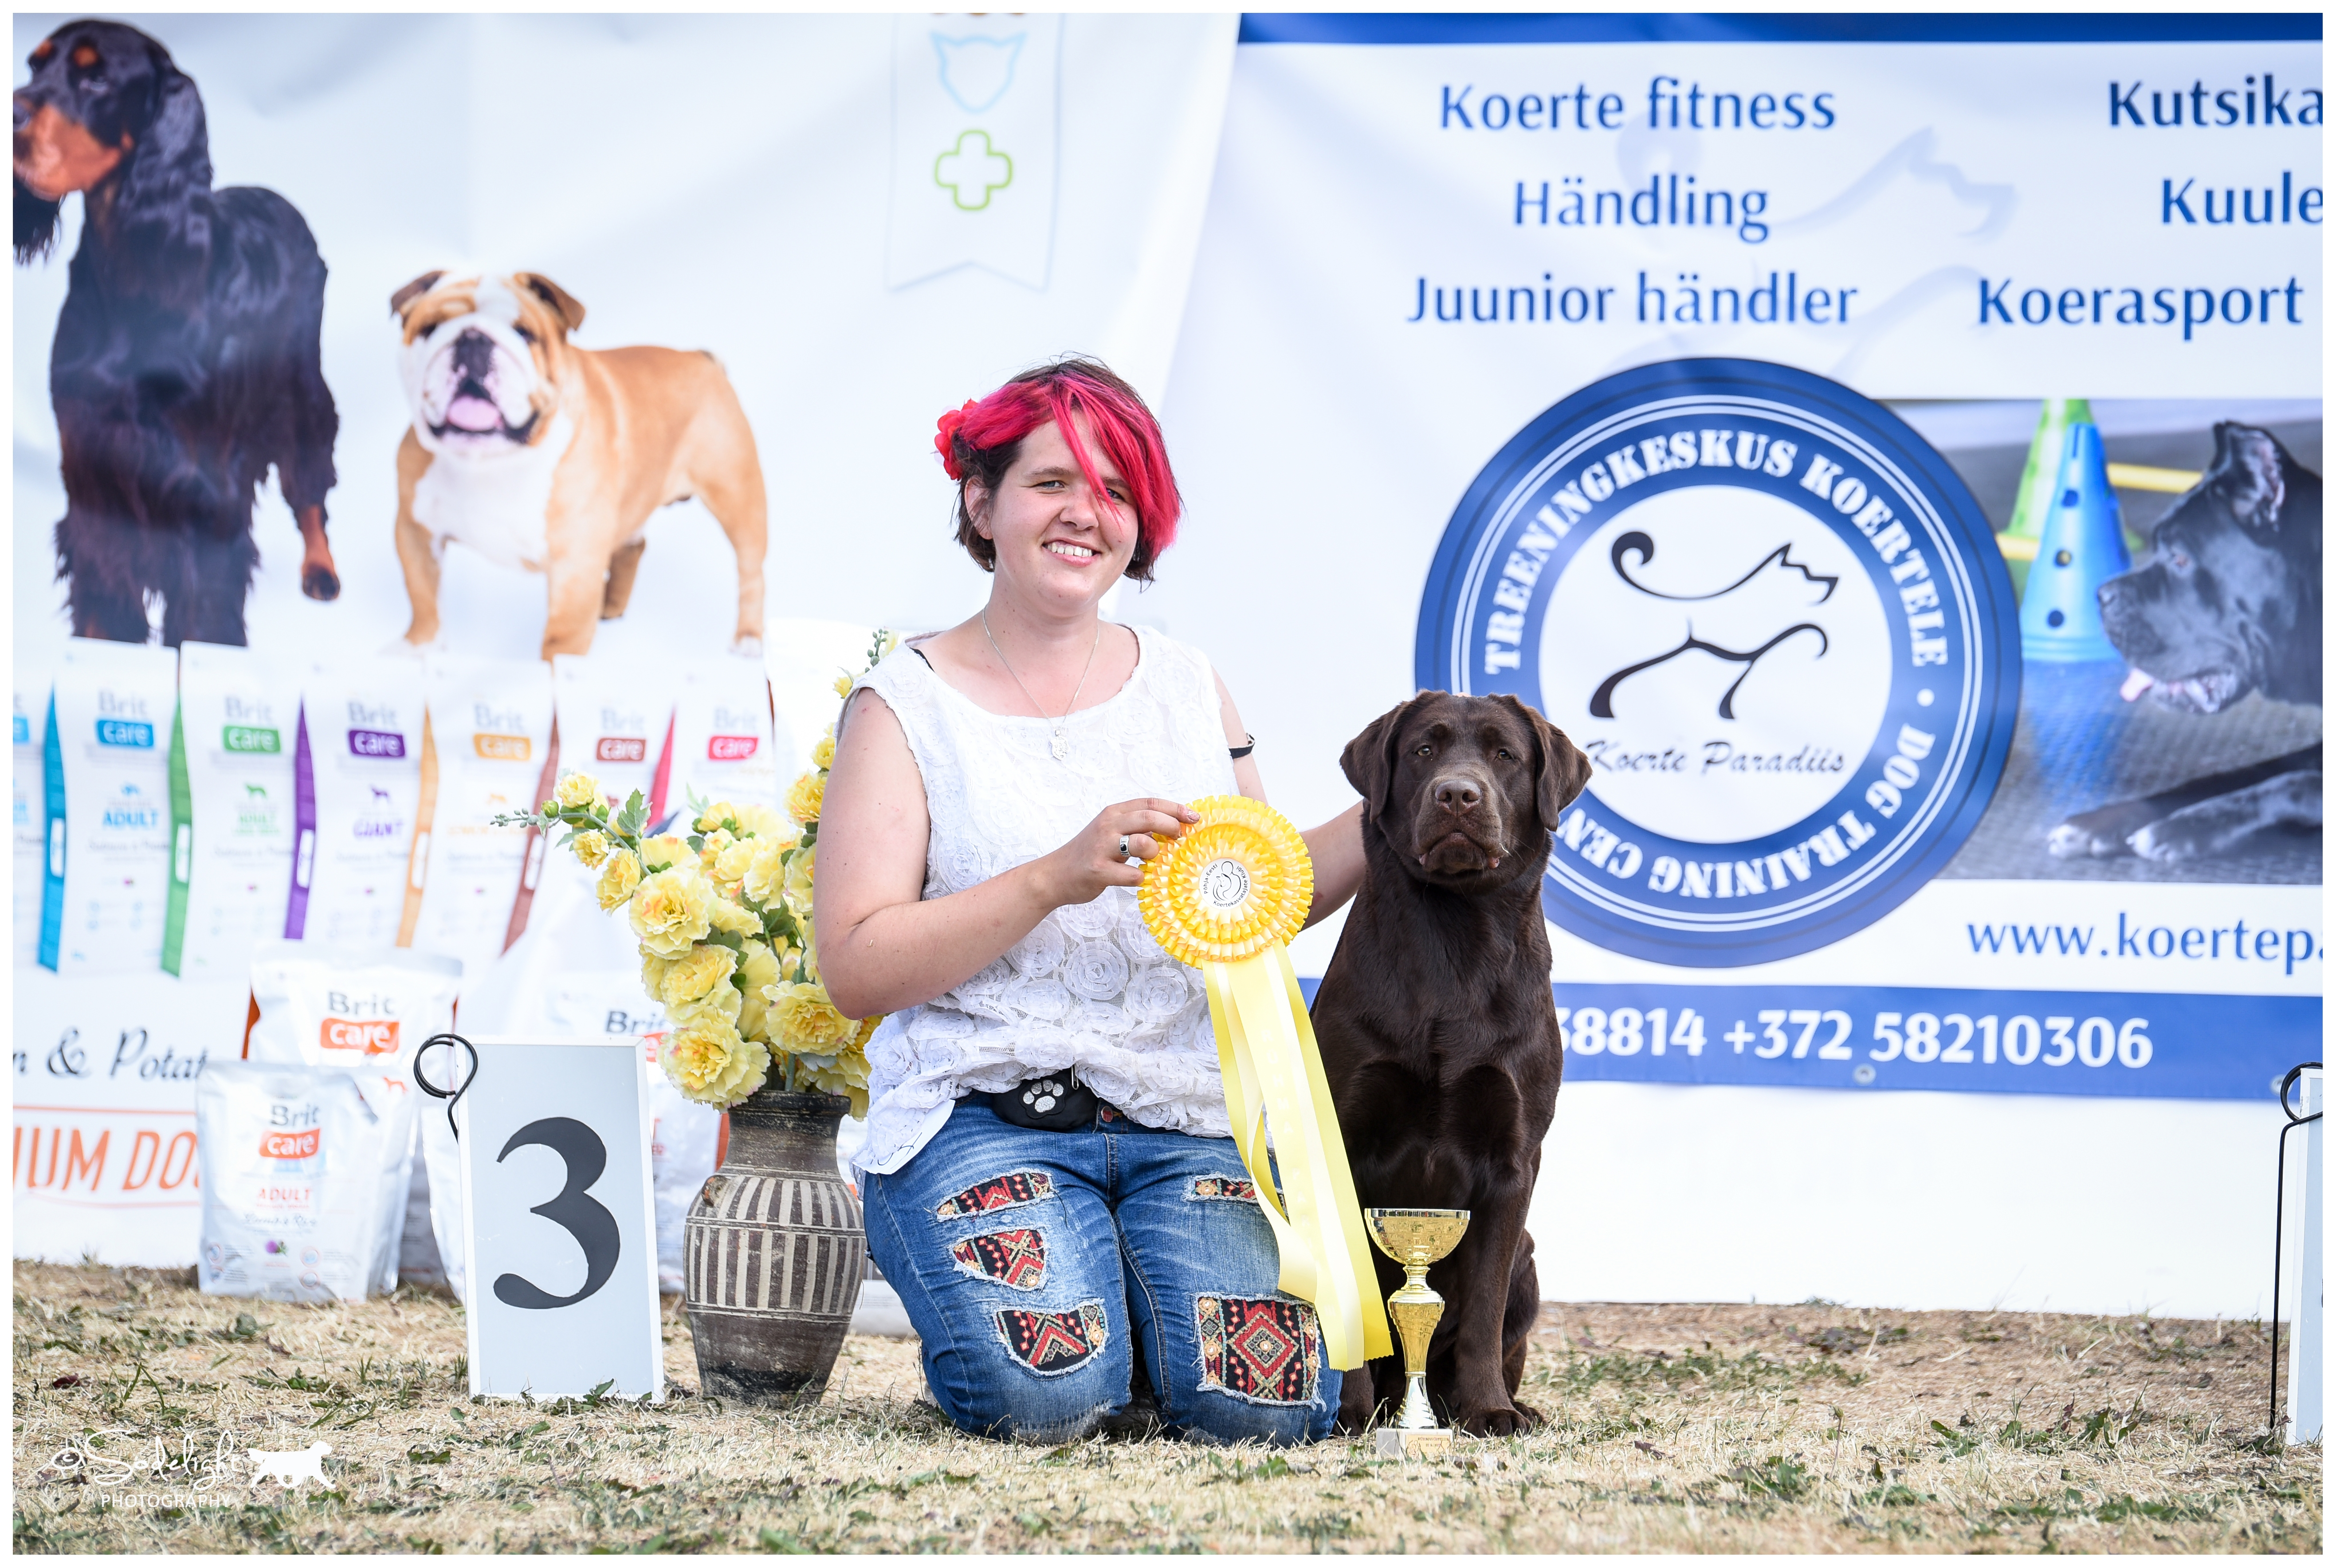 Royal Brown I Love Your Smile BOS Junior & BB2 on Saturday 16.6.2018 National show in Luige, BOB Junior, BB1, BOB & Group 3rd on Sunday 17.6.2018 National Dog Show in Luige,  finished her EST JCH title just with 5 shows ever. Thank you, Maarja Kalma, for showing her the last weekend and achieving all this! Picture by Kadi Haljand.